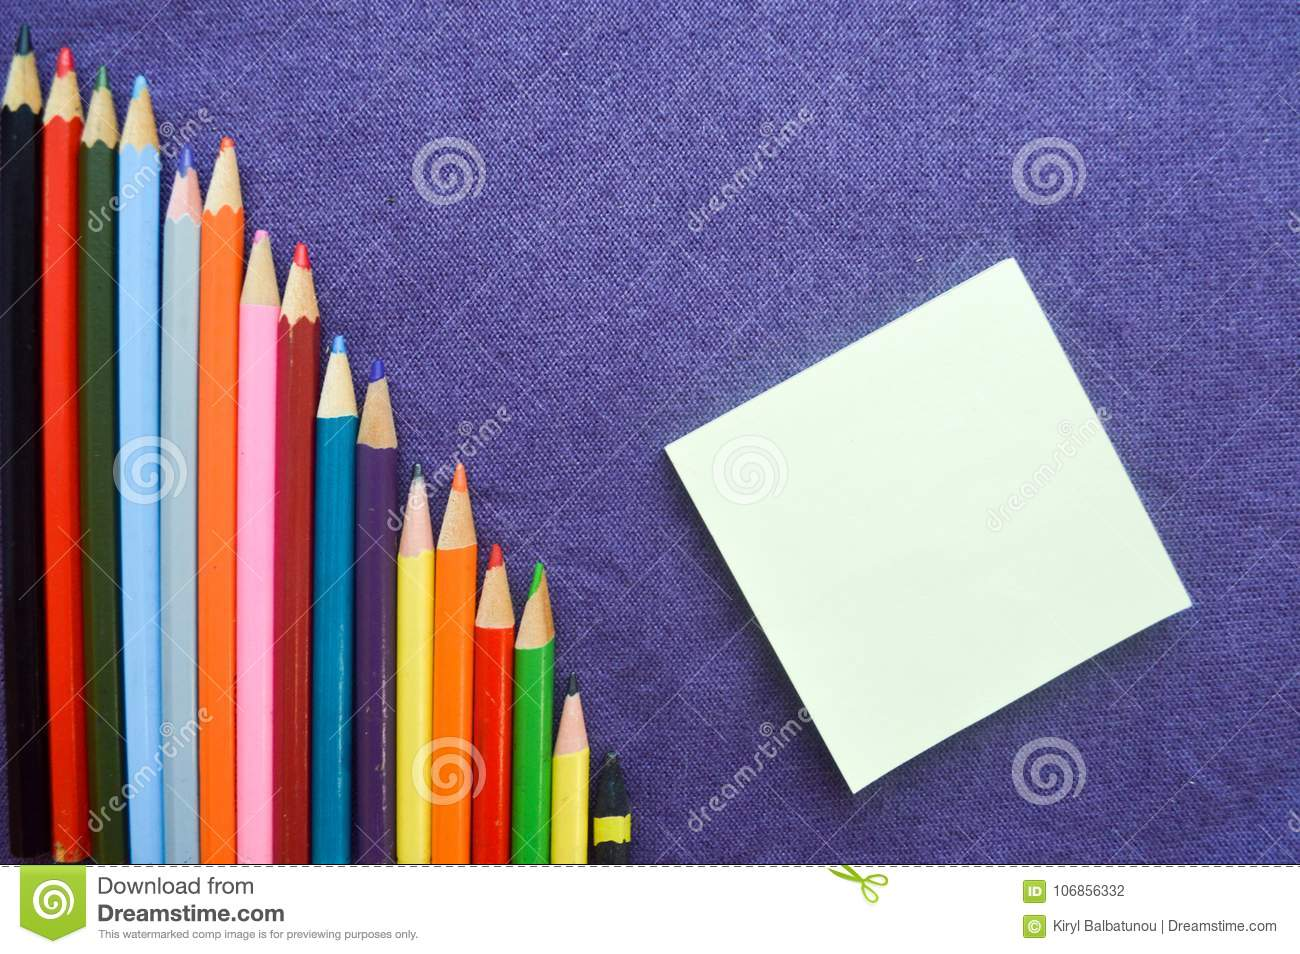 A descending chart of colorful, bright, variegated drawing pencils, a notebook